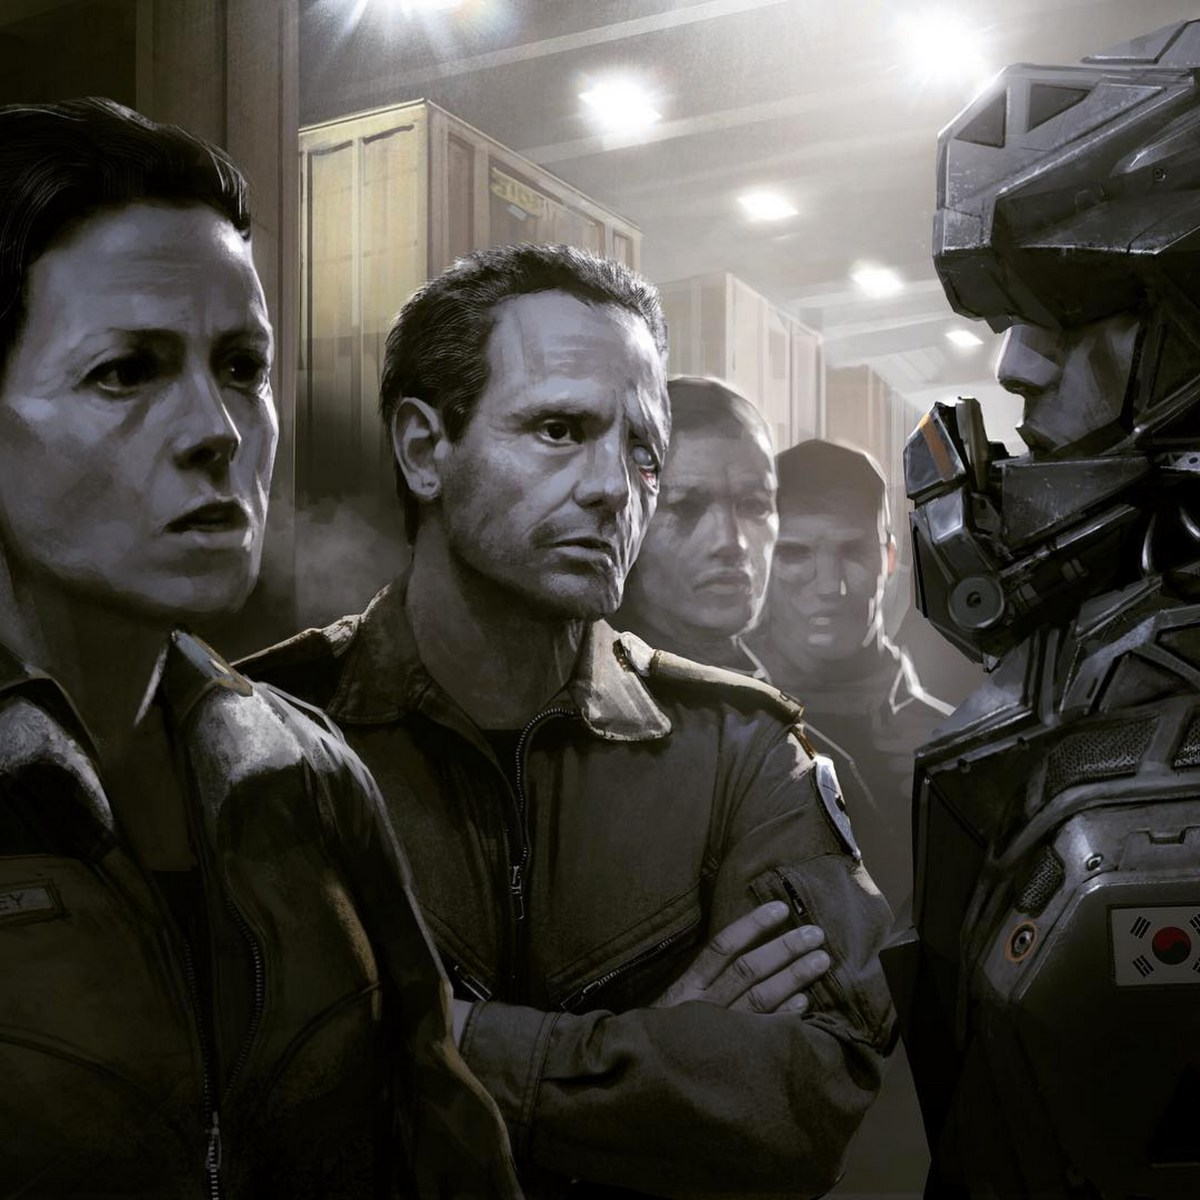 Exclusive: Michael Biehn Sets Record Straight On Alien 5 Speculation